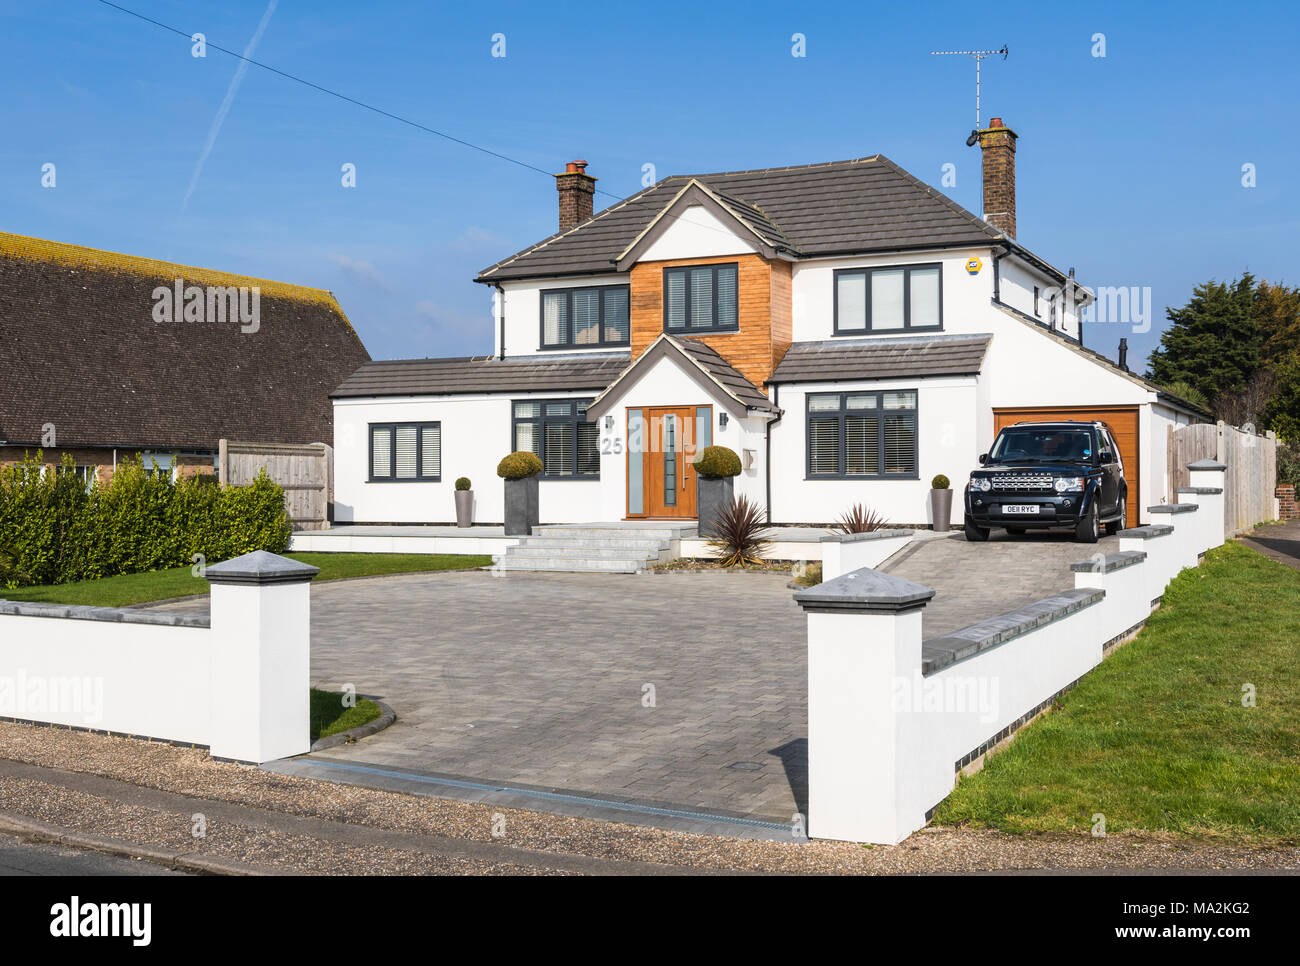 Large modern new detached house in a town in West Sussex, England, UK. Stock Photo